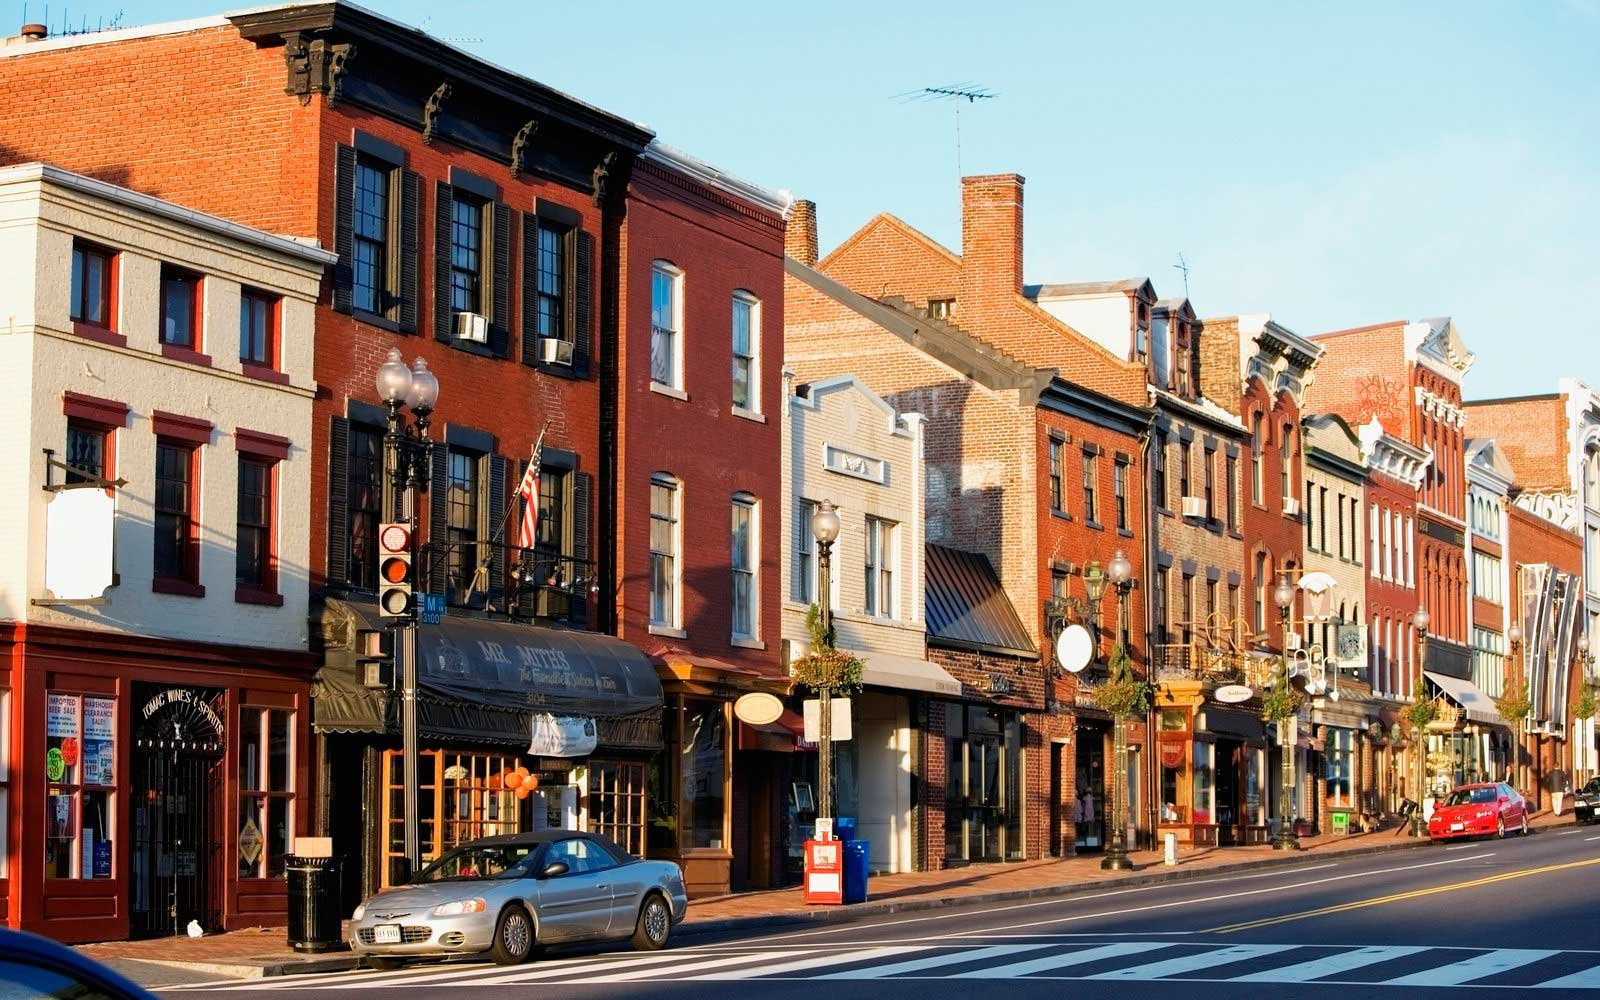 Buildings along a road, M street, Georgetown, Washington DC, USA